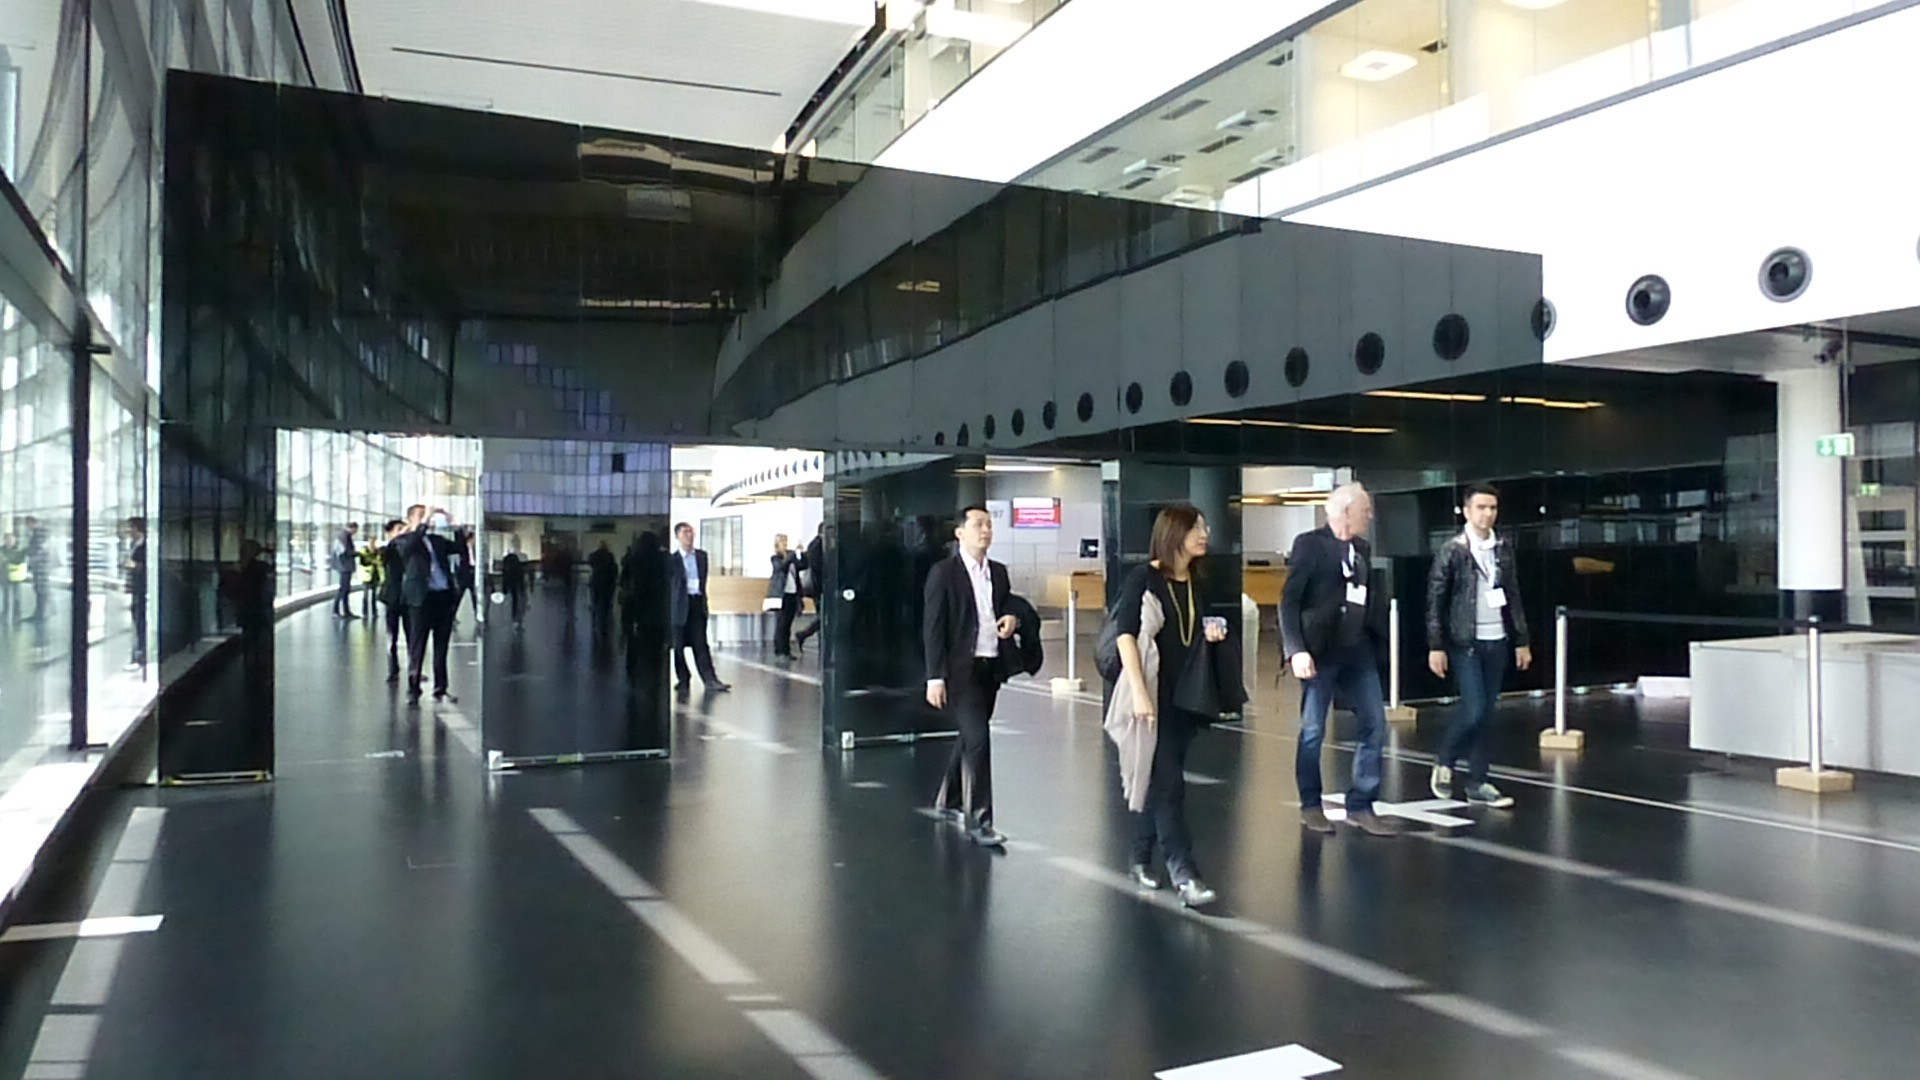 Behind the scenes tour of Vienna Airport in 2012, prior to the opening of the new International Terminal